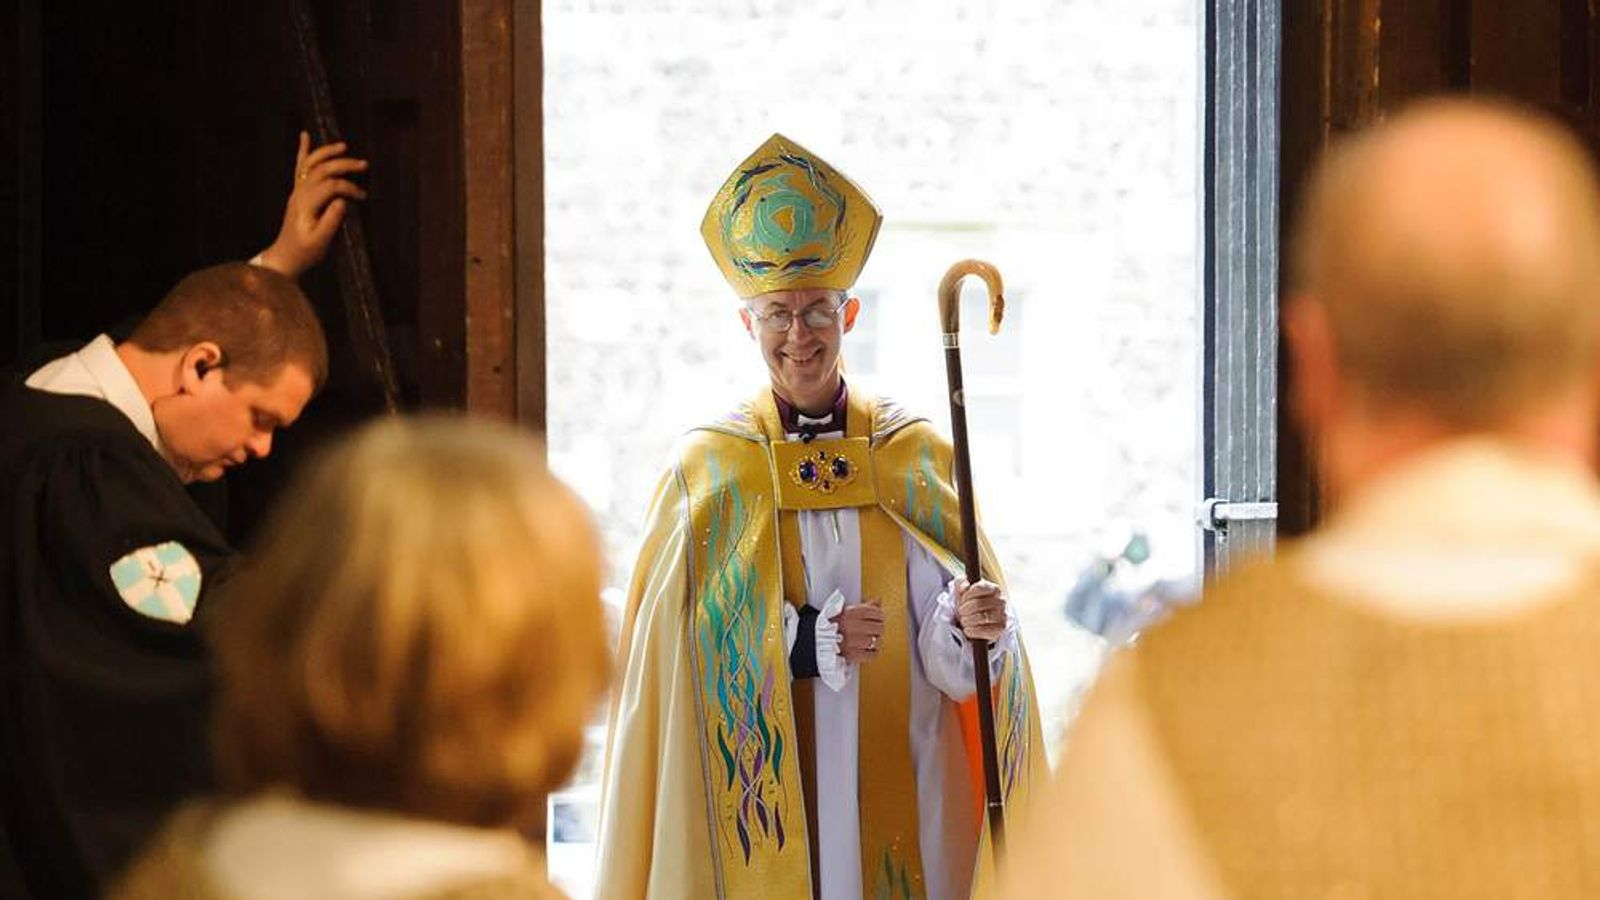 Archbishop of Canterbury Enthronement